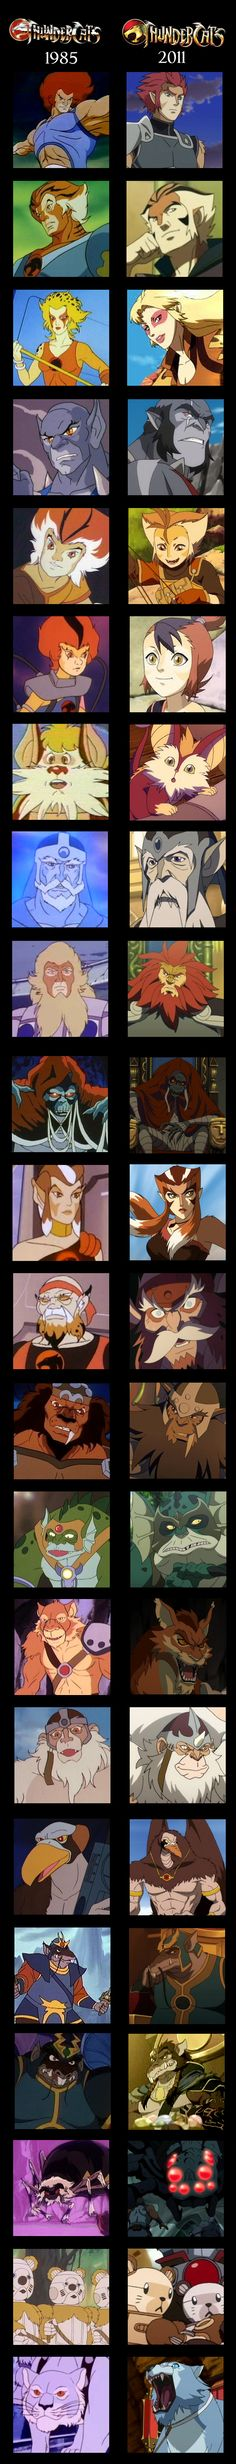 Thundercats 1985 and 2011 Comparison by Ilona-the-Sinister.deviantart.com on @deviantART #1980s #cartoons